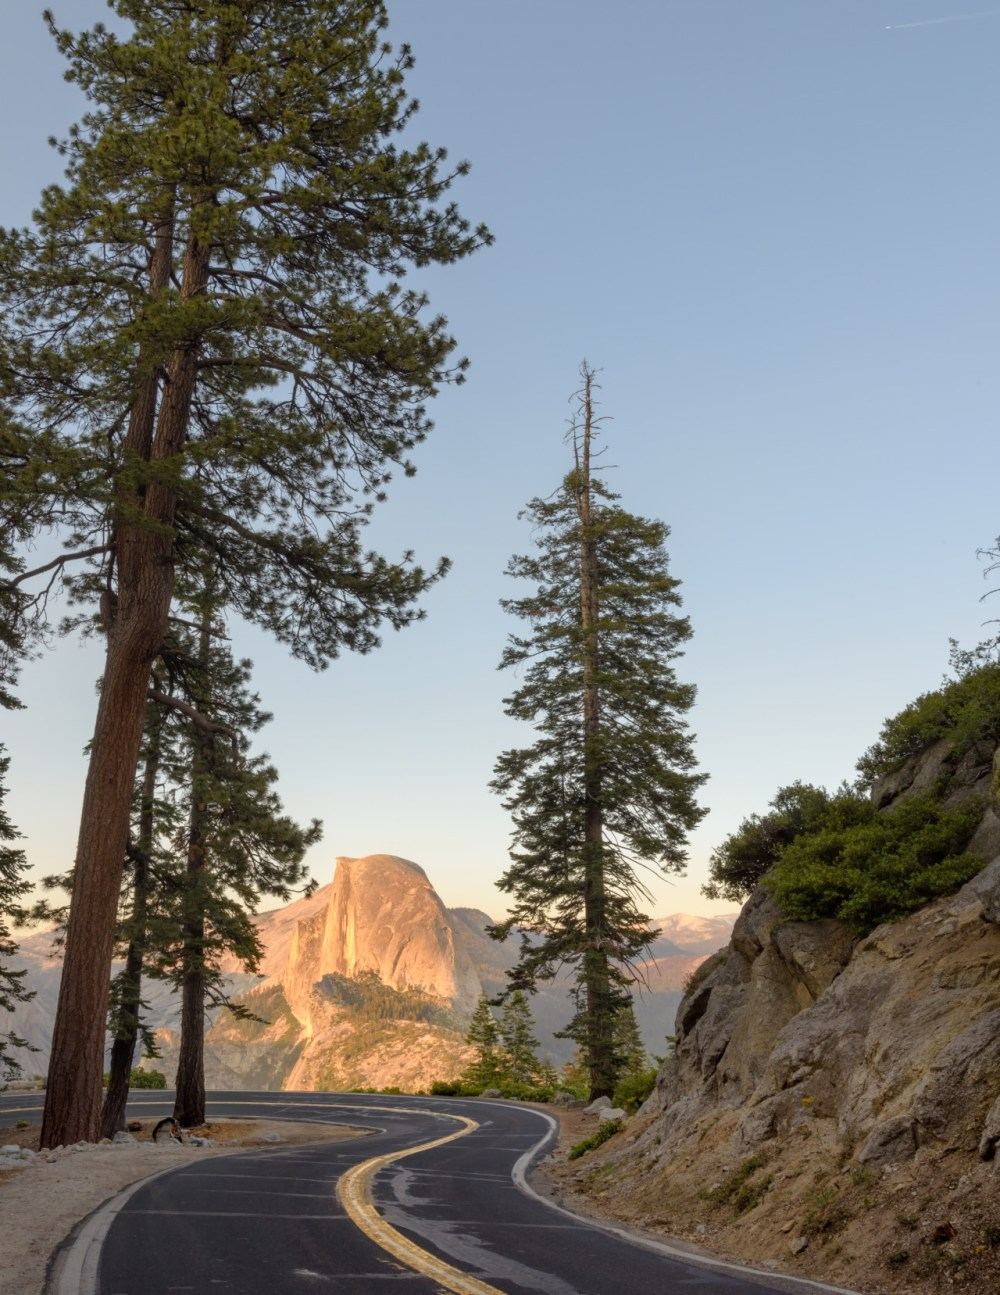 """""""There's just something about a winding road that ignites wanderlust,"""" says photographer Kathryn Dyer! At an impromptu stop in California's Yosemite National Park, Kathryn captured this incredible shot of Half Dome shining golden from a beautiful alpenglow and framed by trees. When you visit public lands, you never know what amazing vistas you'll find! Photo by Kathryn Dyer. Posted on Tumblr by the US Department of the Interior, 9/25/16."""